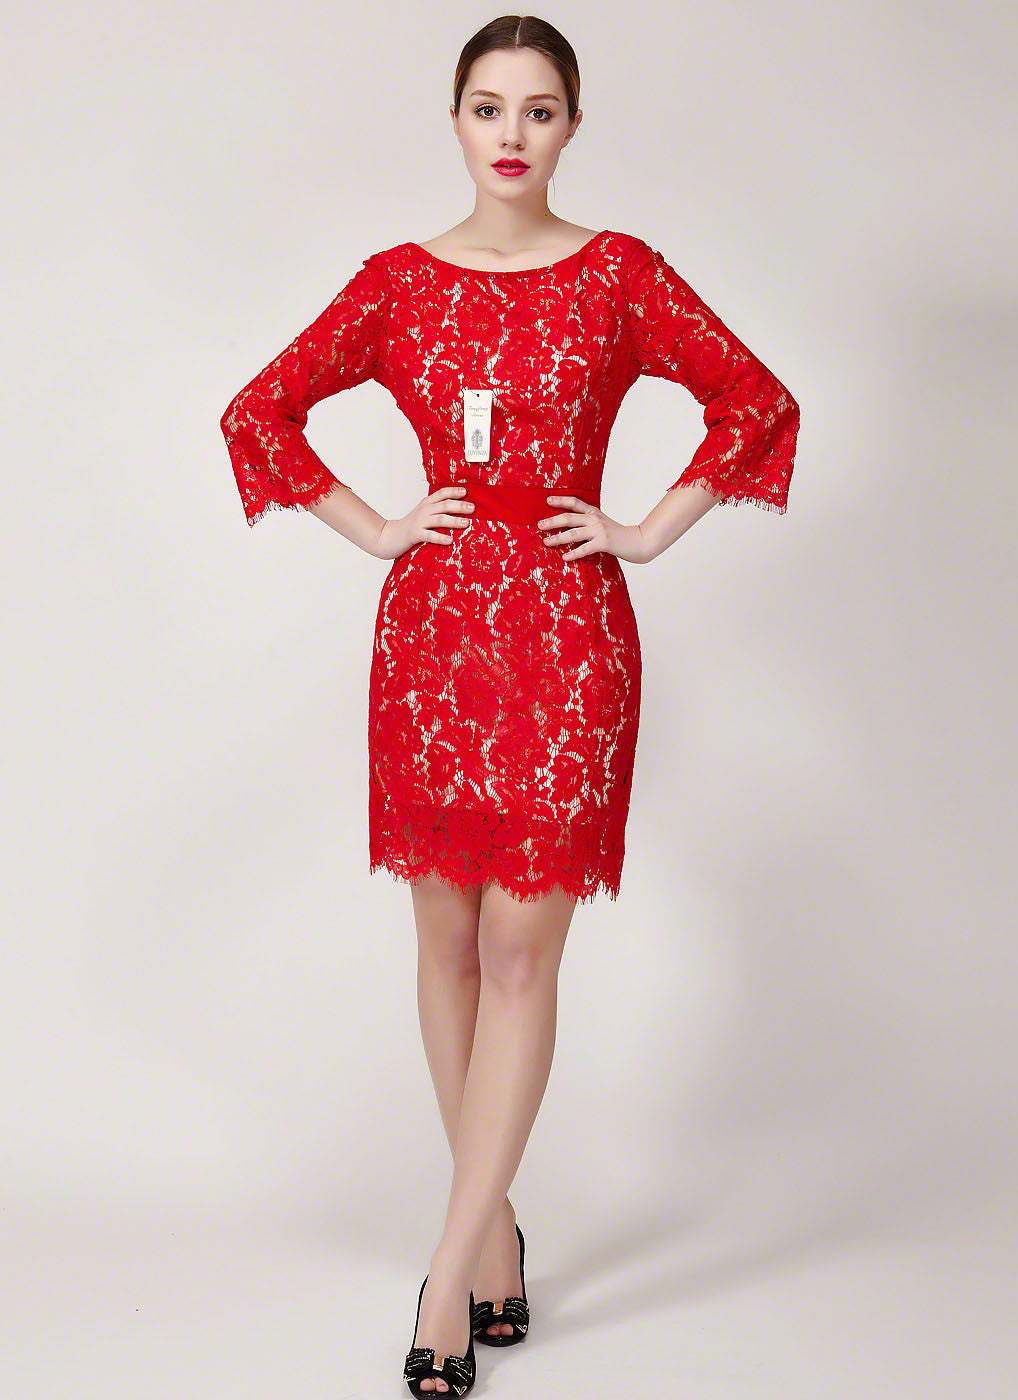 b6cbb60d86 V Back Red Lace Mini Dress with Elbow Sleeves and Scalloped Hem